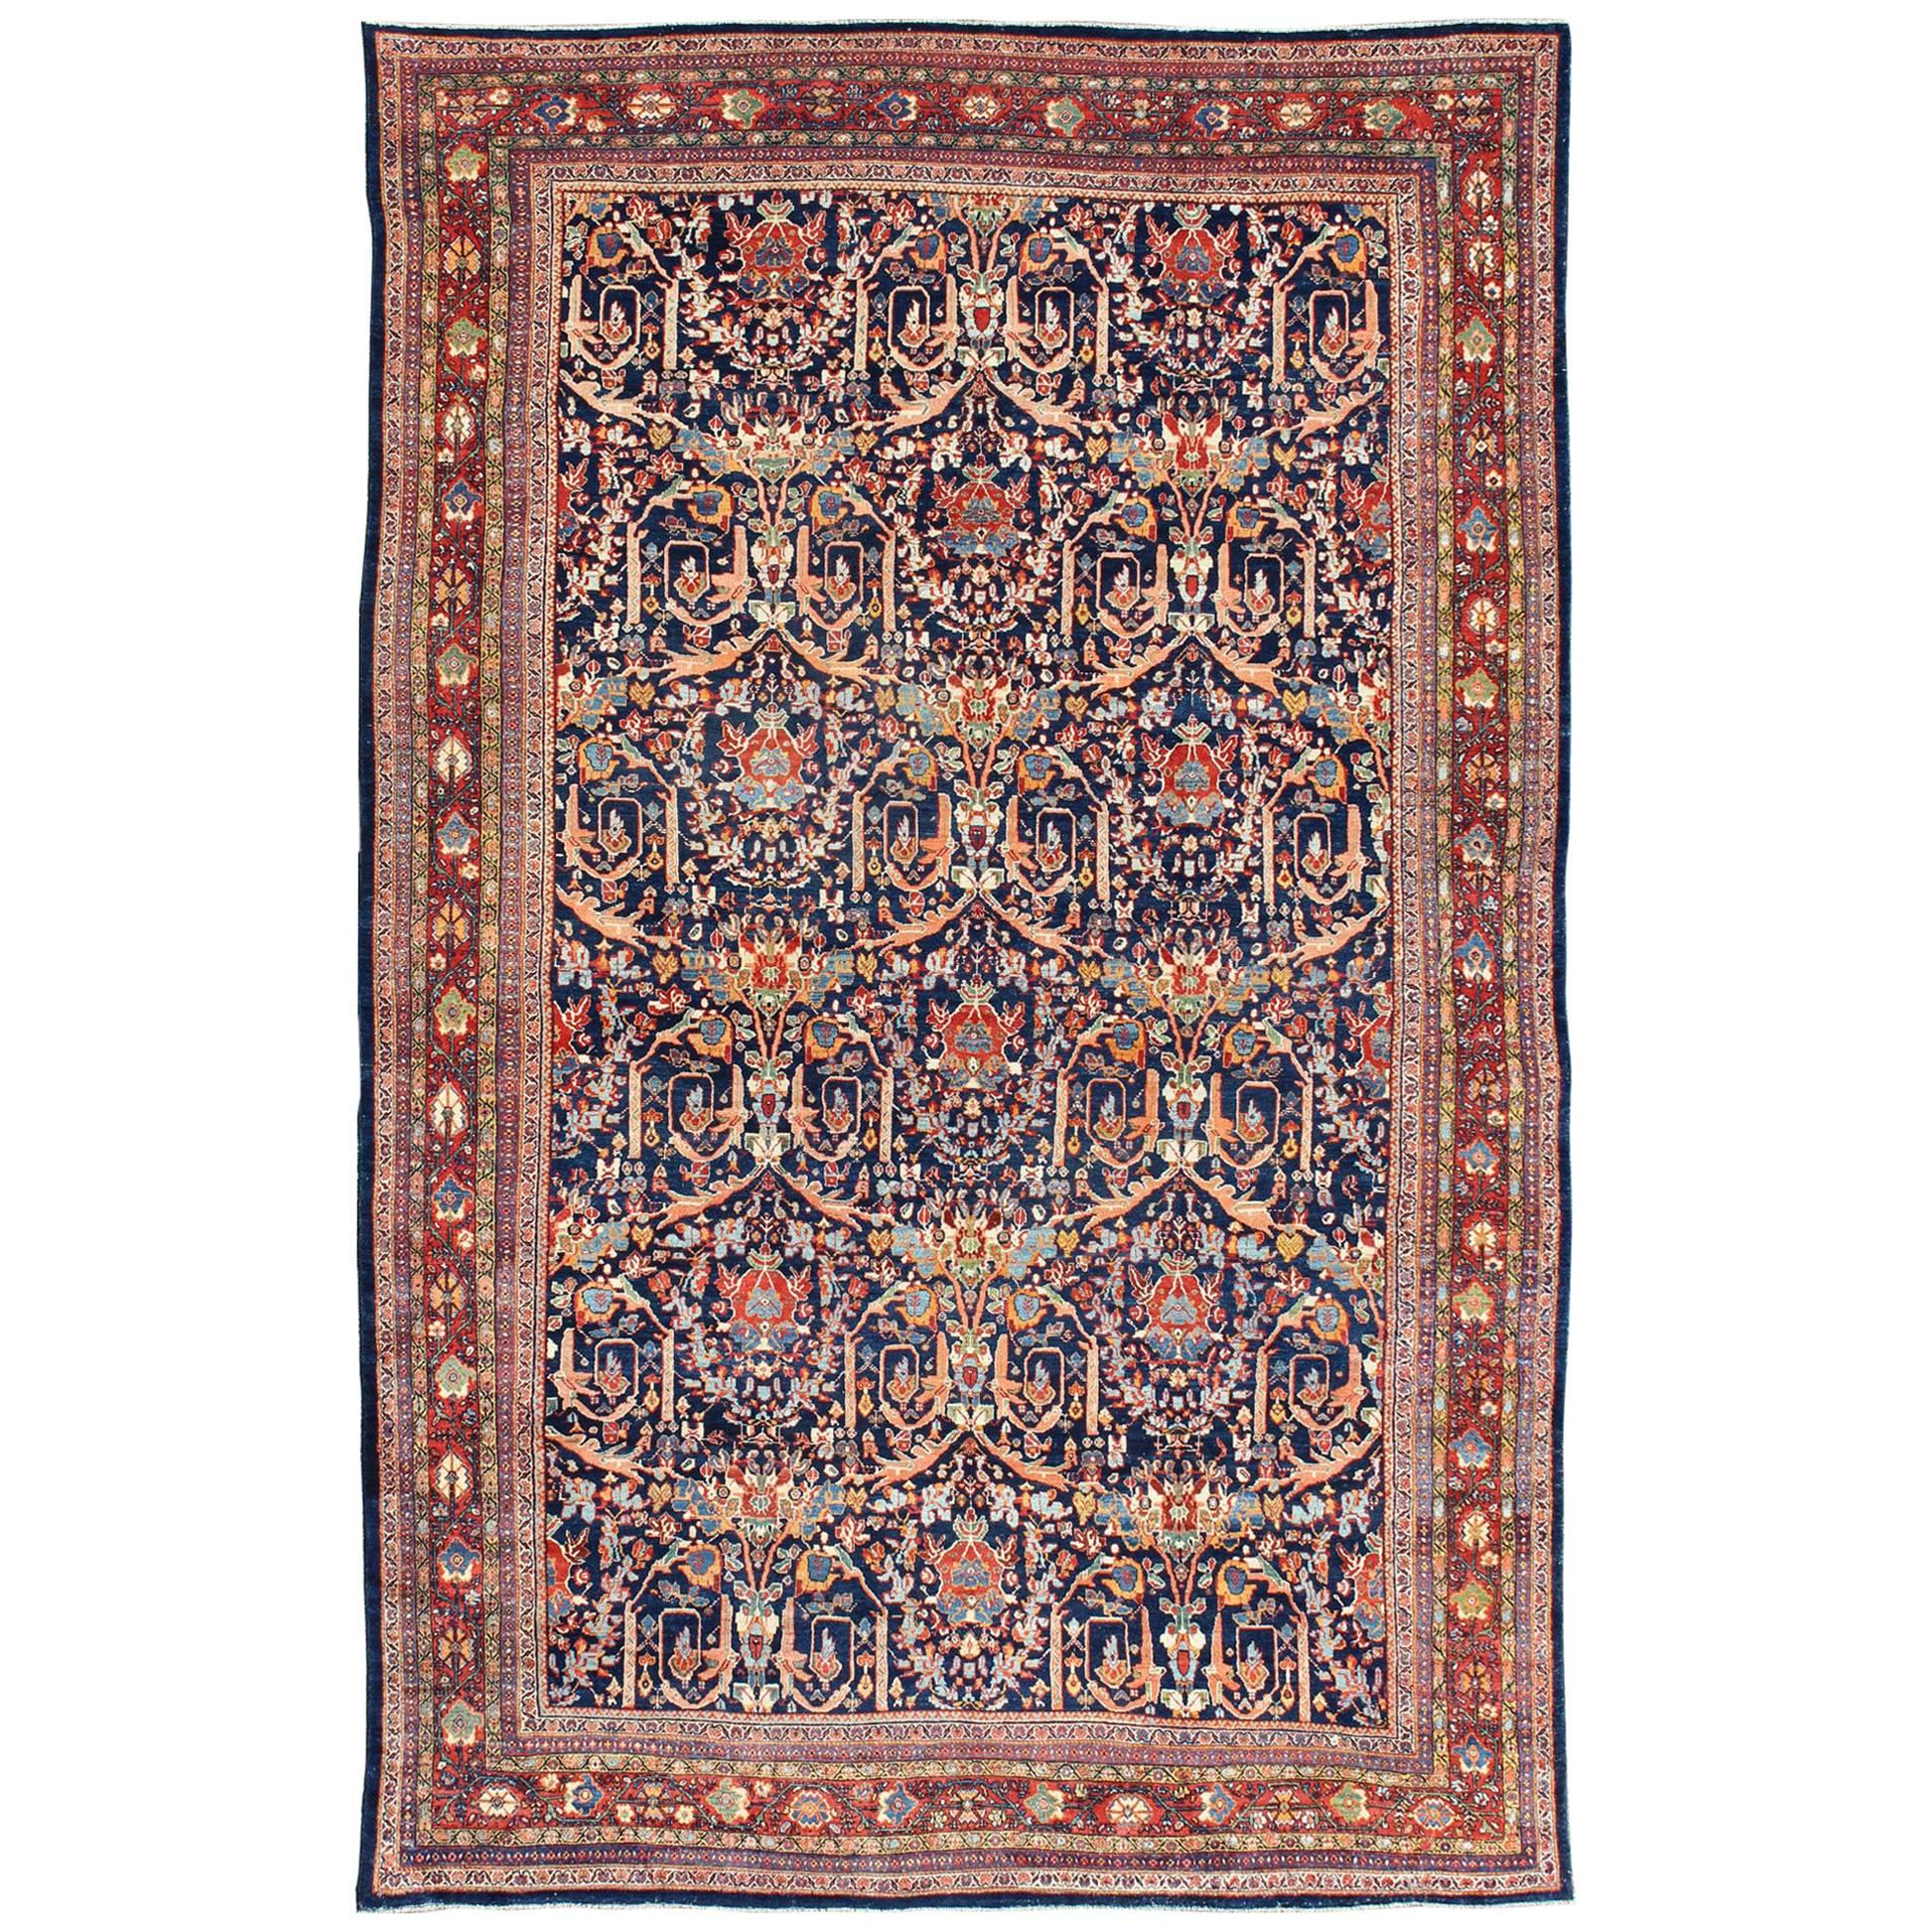 Large Antique Persian Sultanabad Rug in Blue Background in Multi Colors